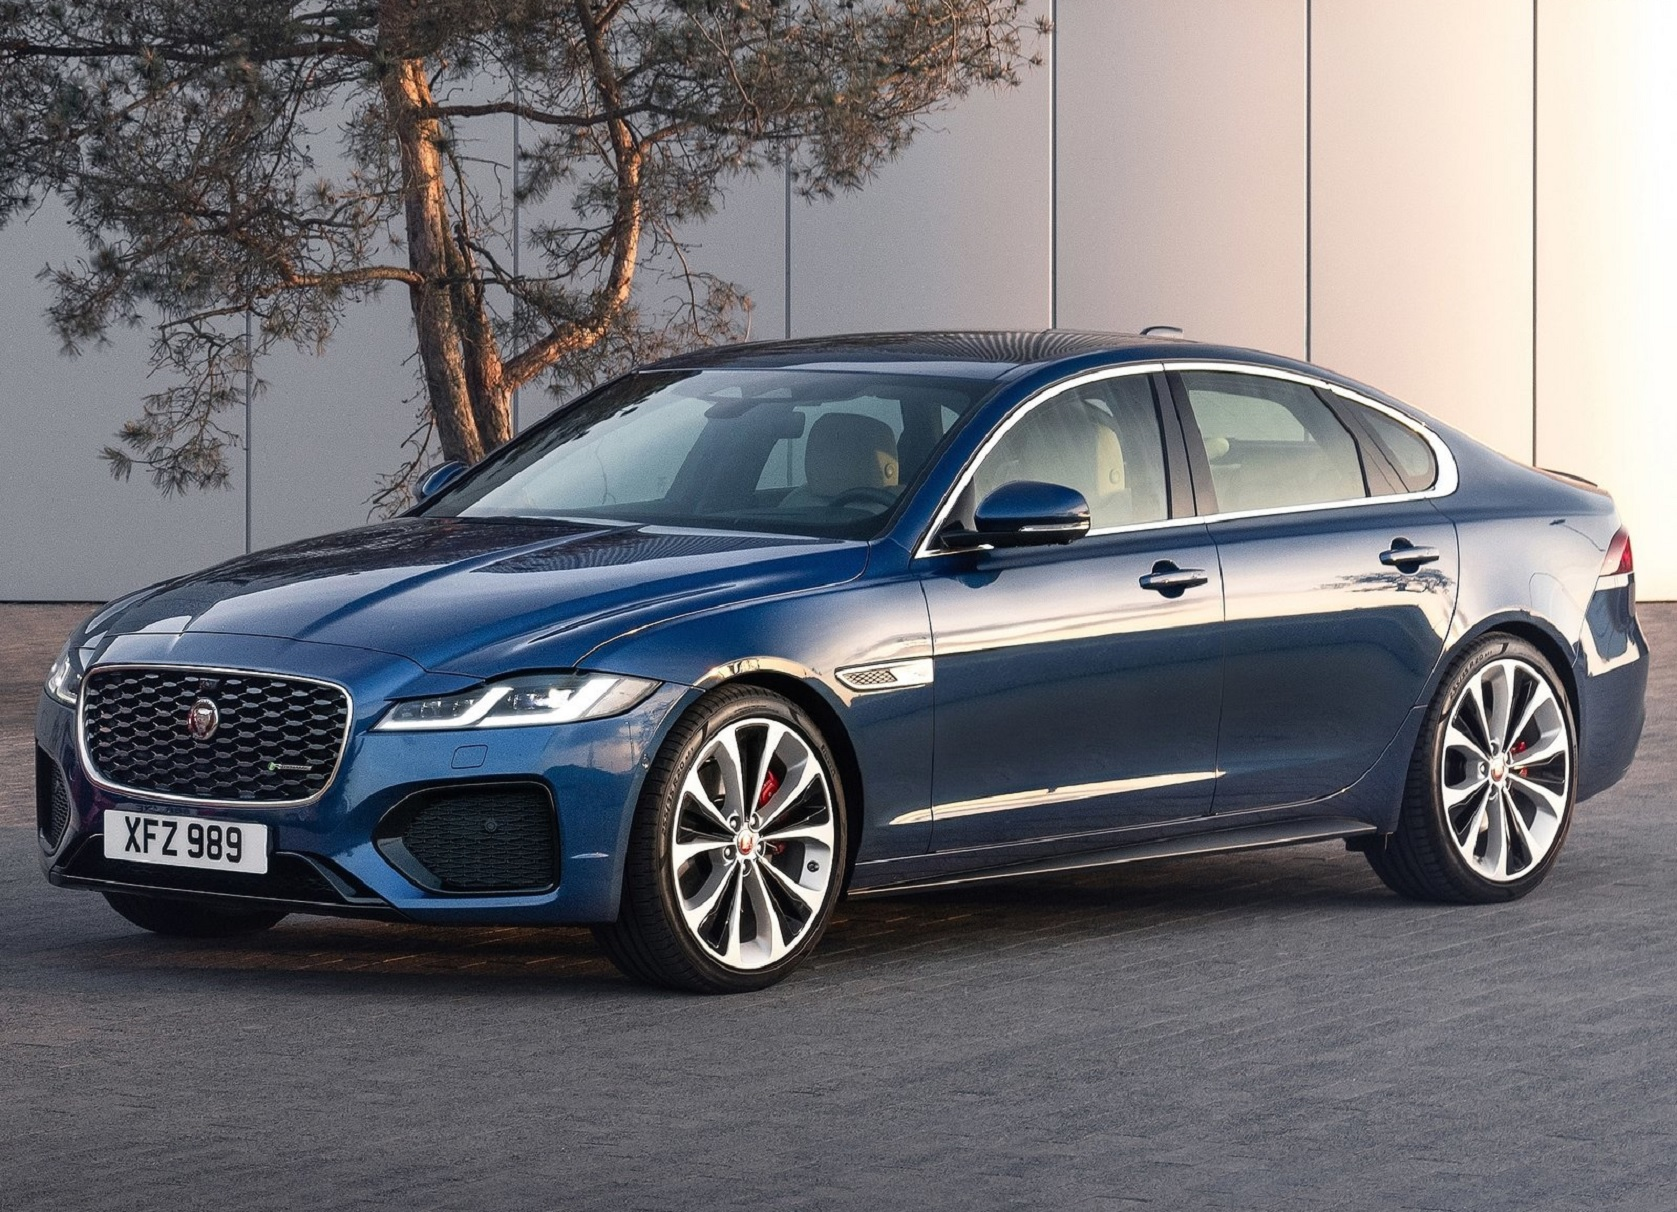 The 2021 Jaguar XF: Add Luxury, Subtract Engines, Price and the Wagon